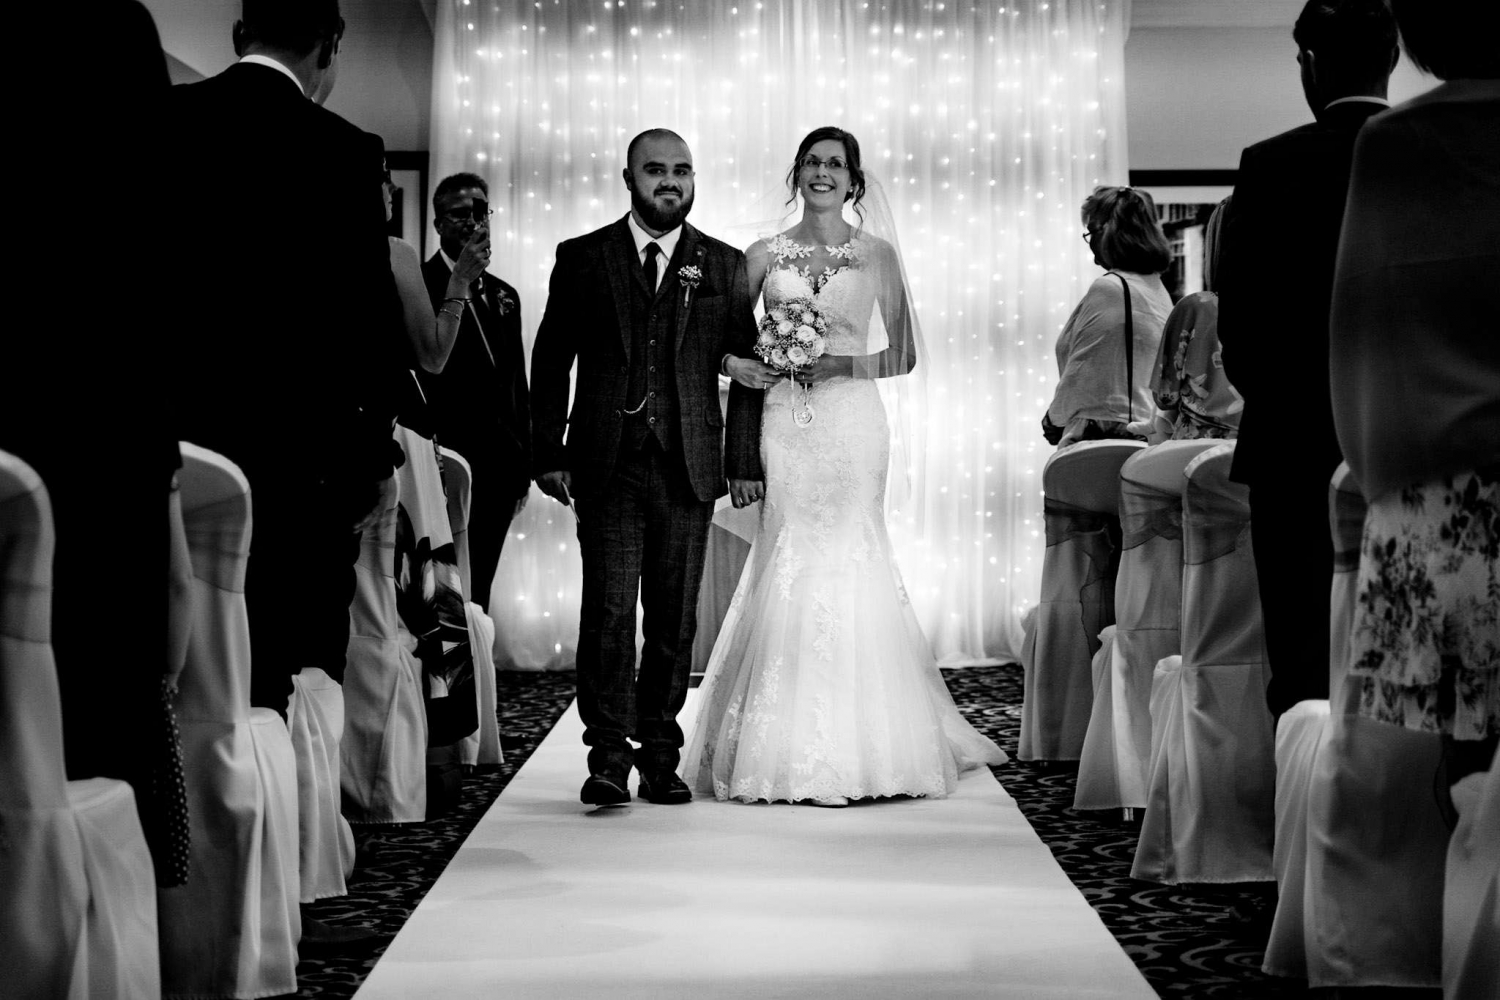 Newly married walking up the aisle after getting married at Frimley Hall Hotel